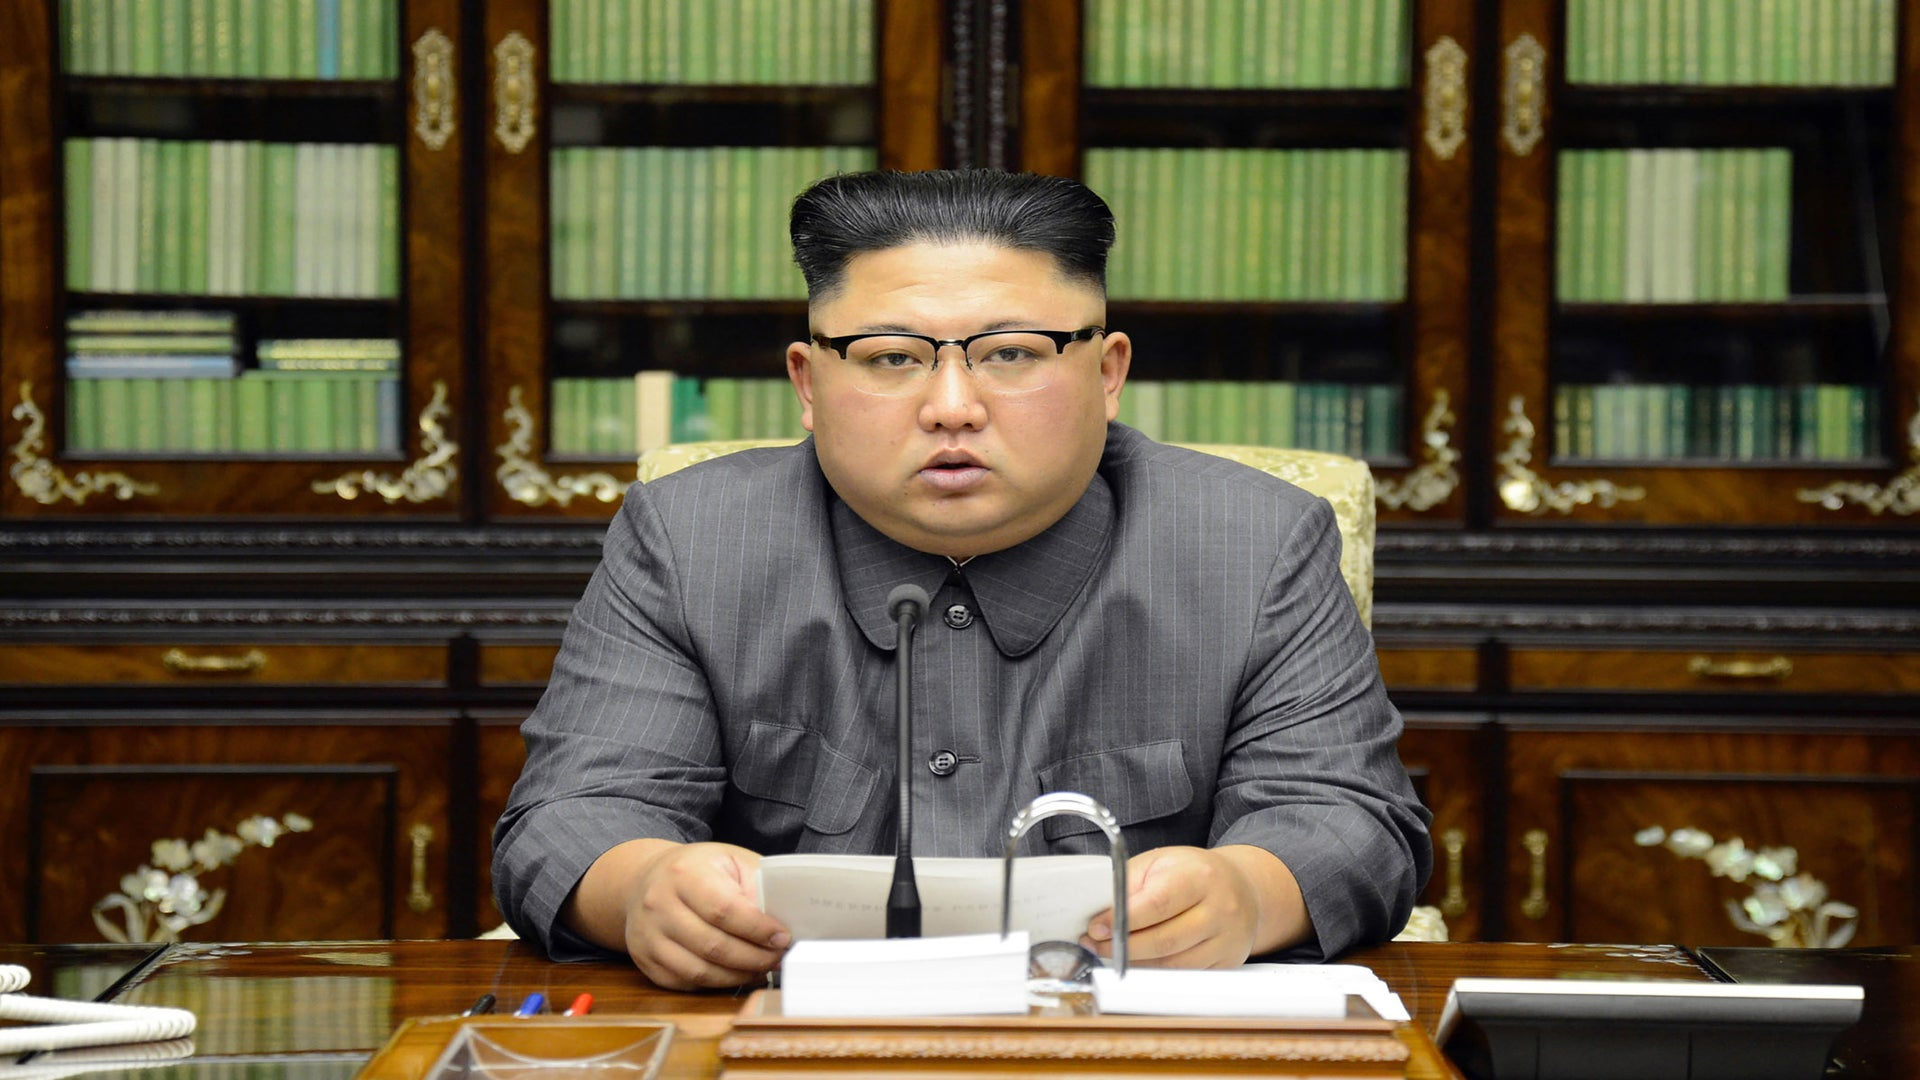 Kim Jong Un: North Korea's Nuclear Forces Are A Reality, Not A Threat